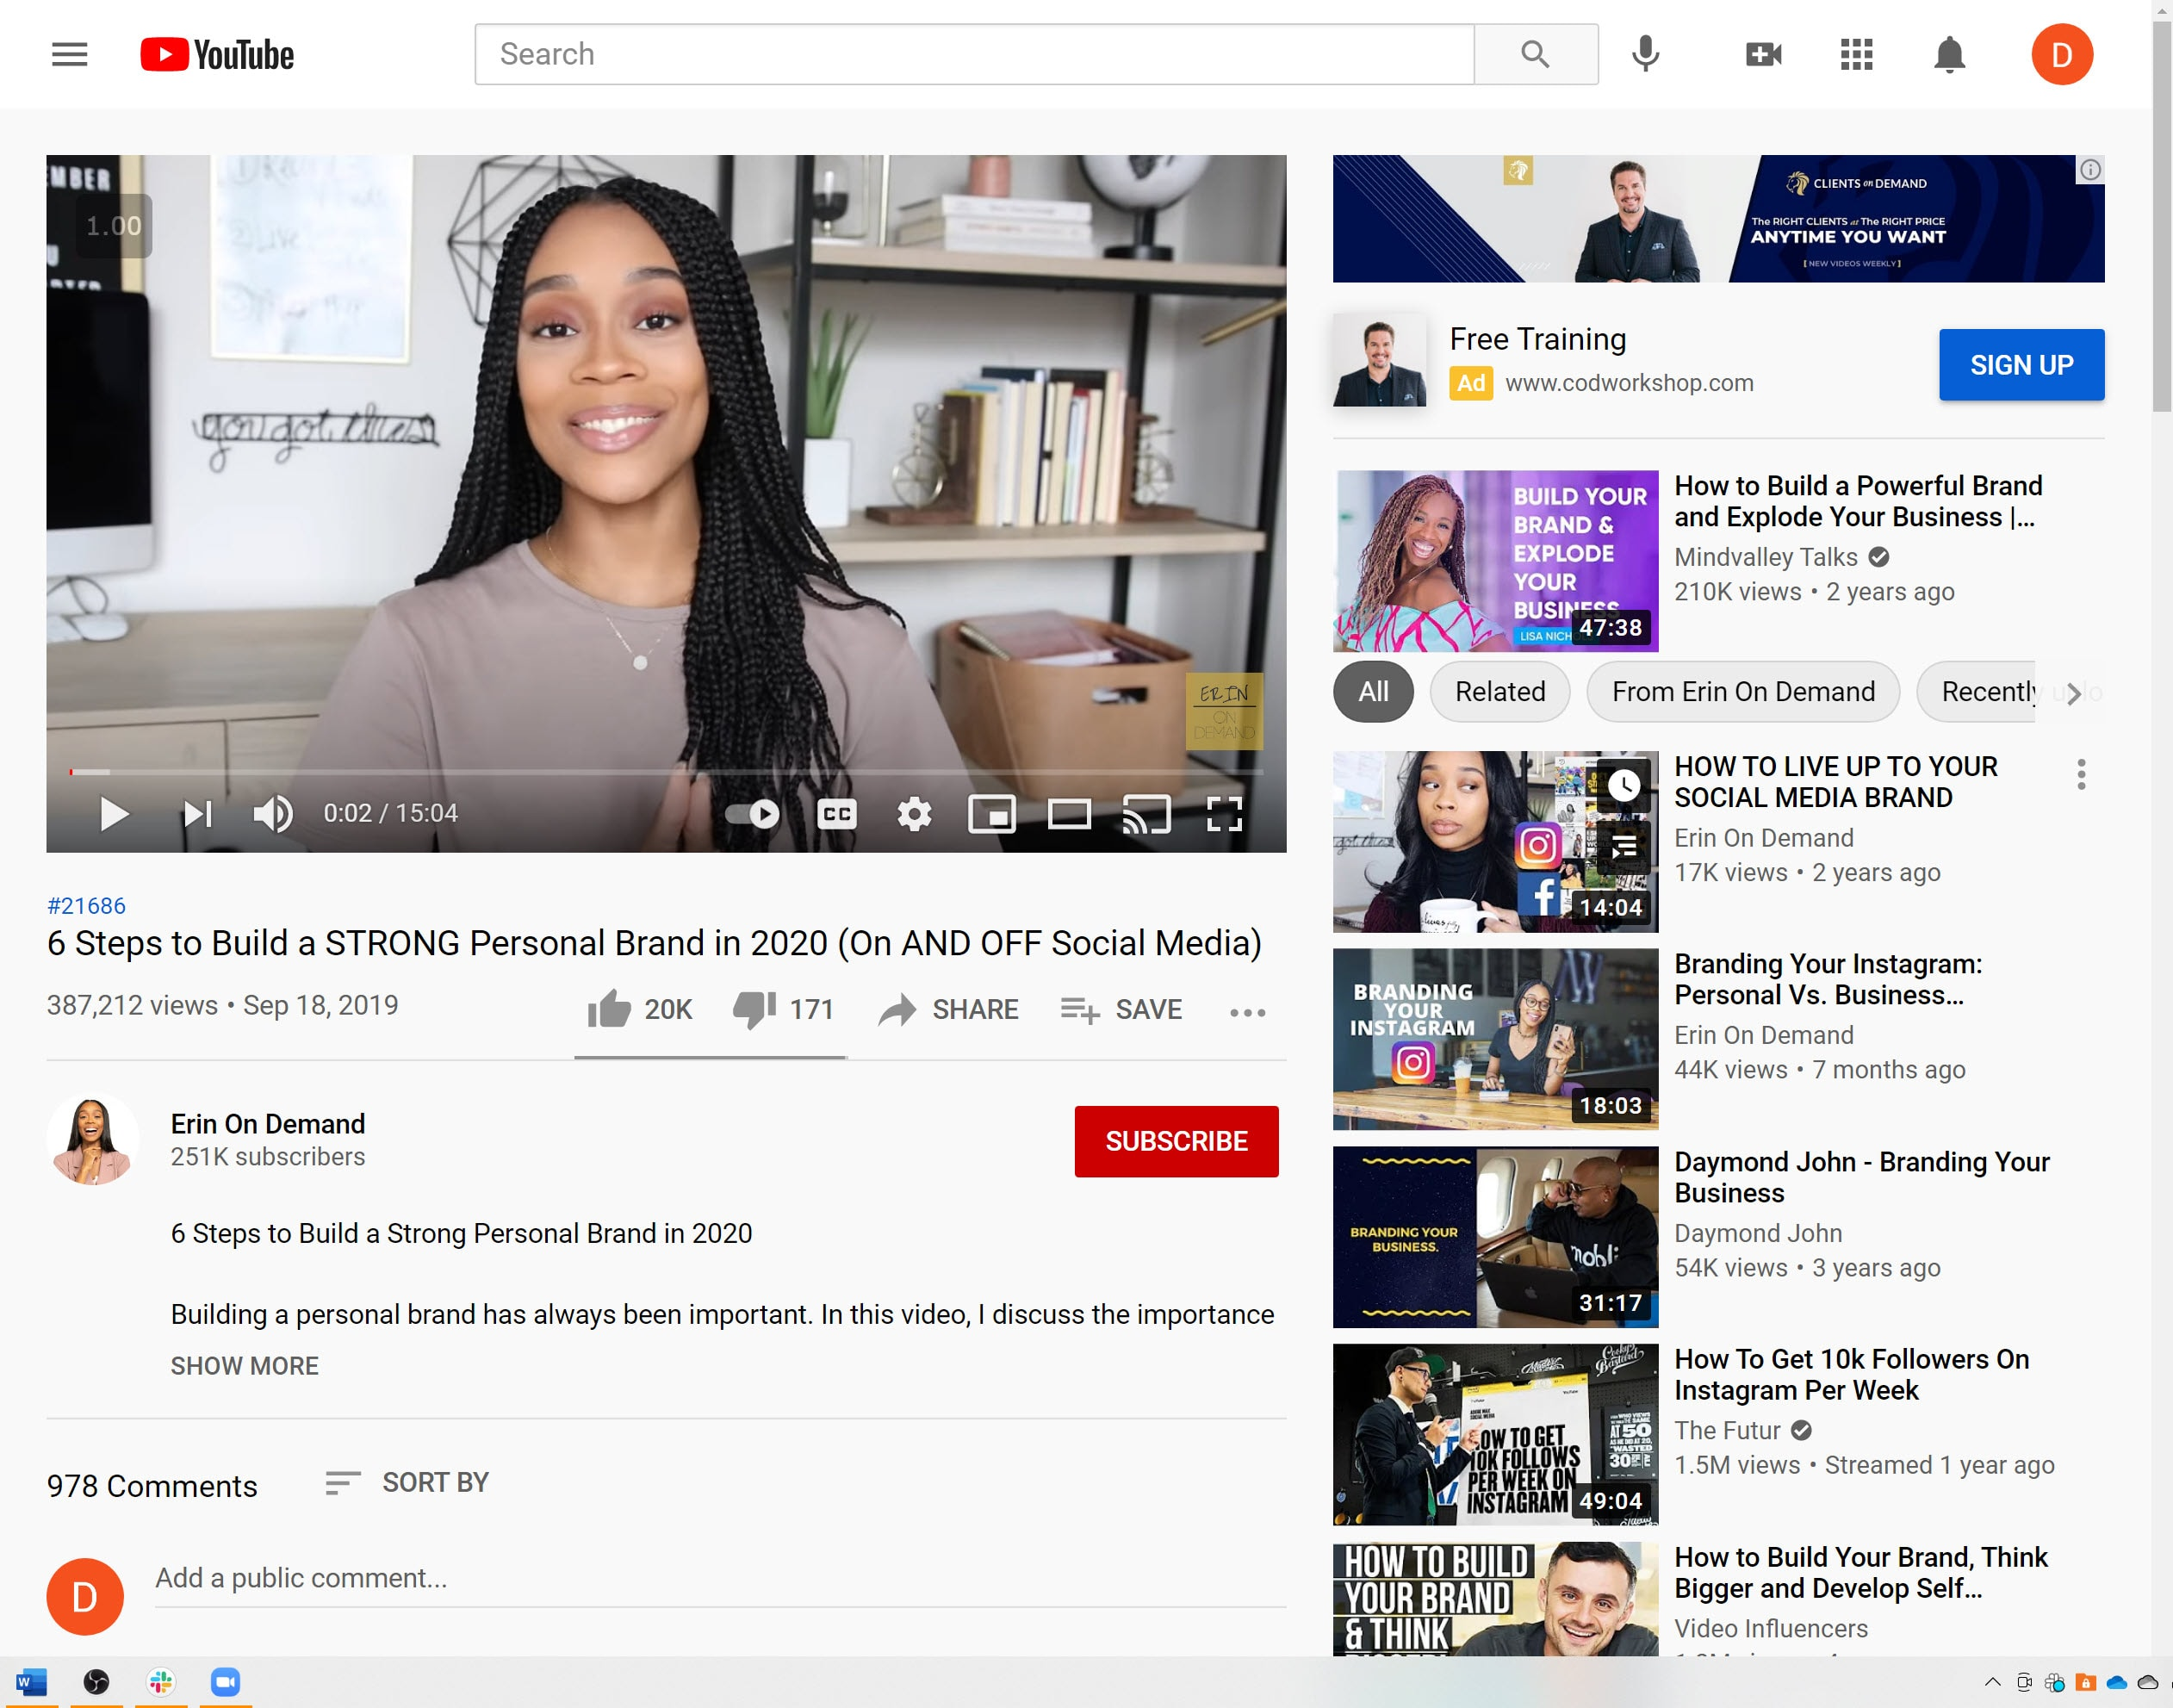 Screenshot of Erin On Demand related videos